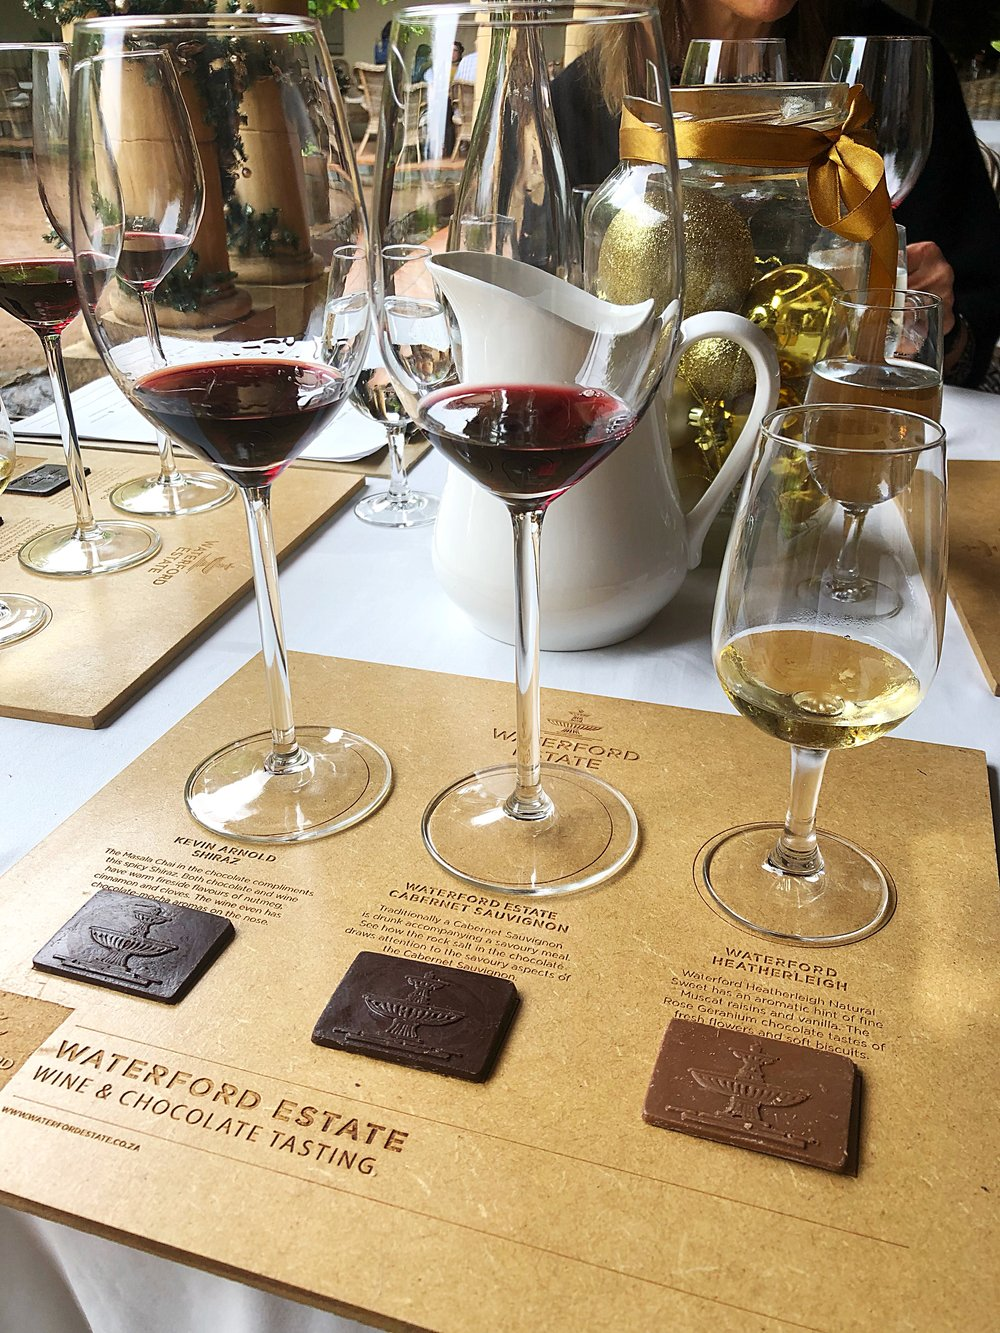 The wine and chocolate tasting which pairs dark and milk chocolate with the Shiraz, Cabernet Sauvignon and Natural Sweet wine